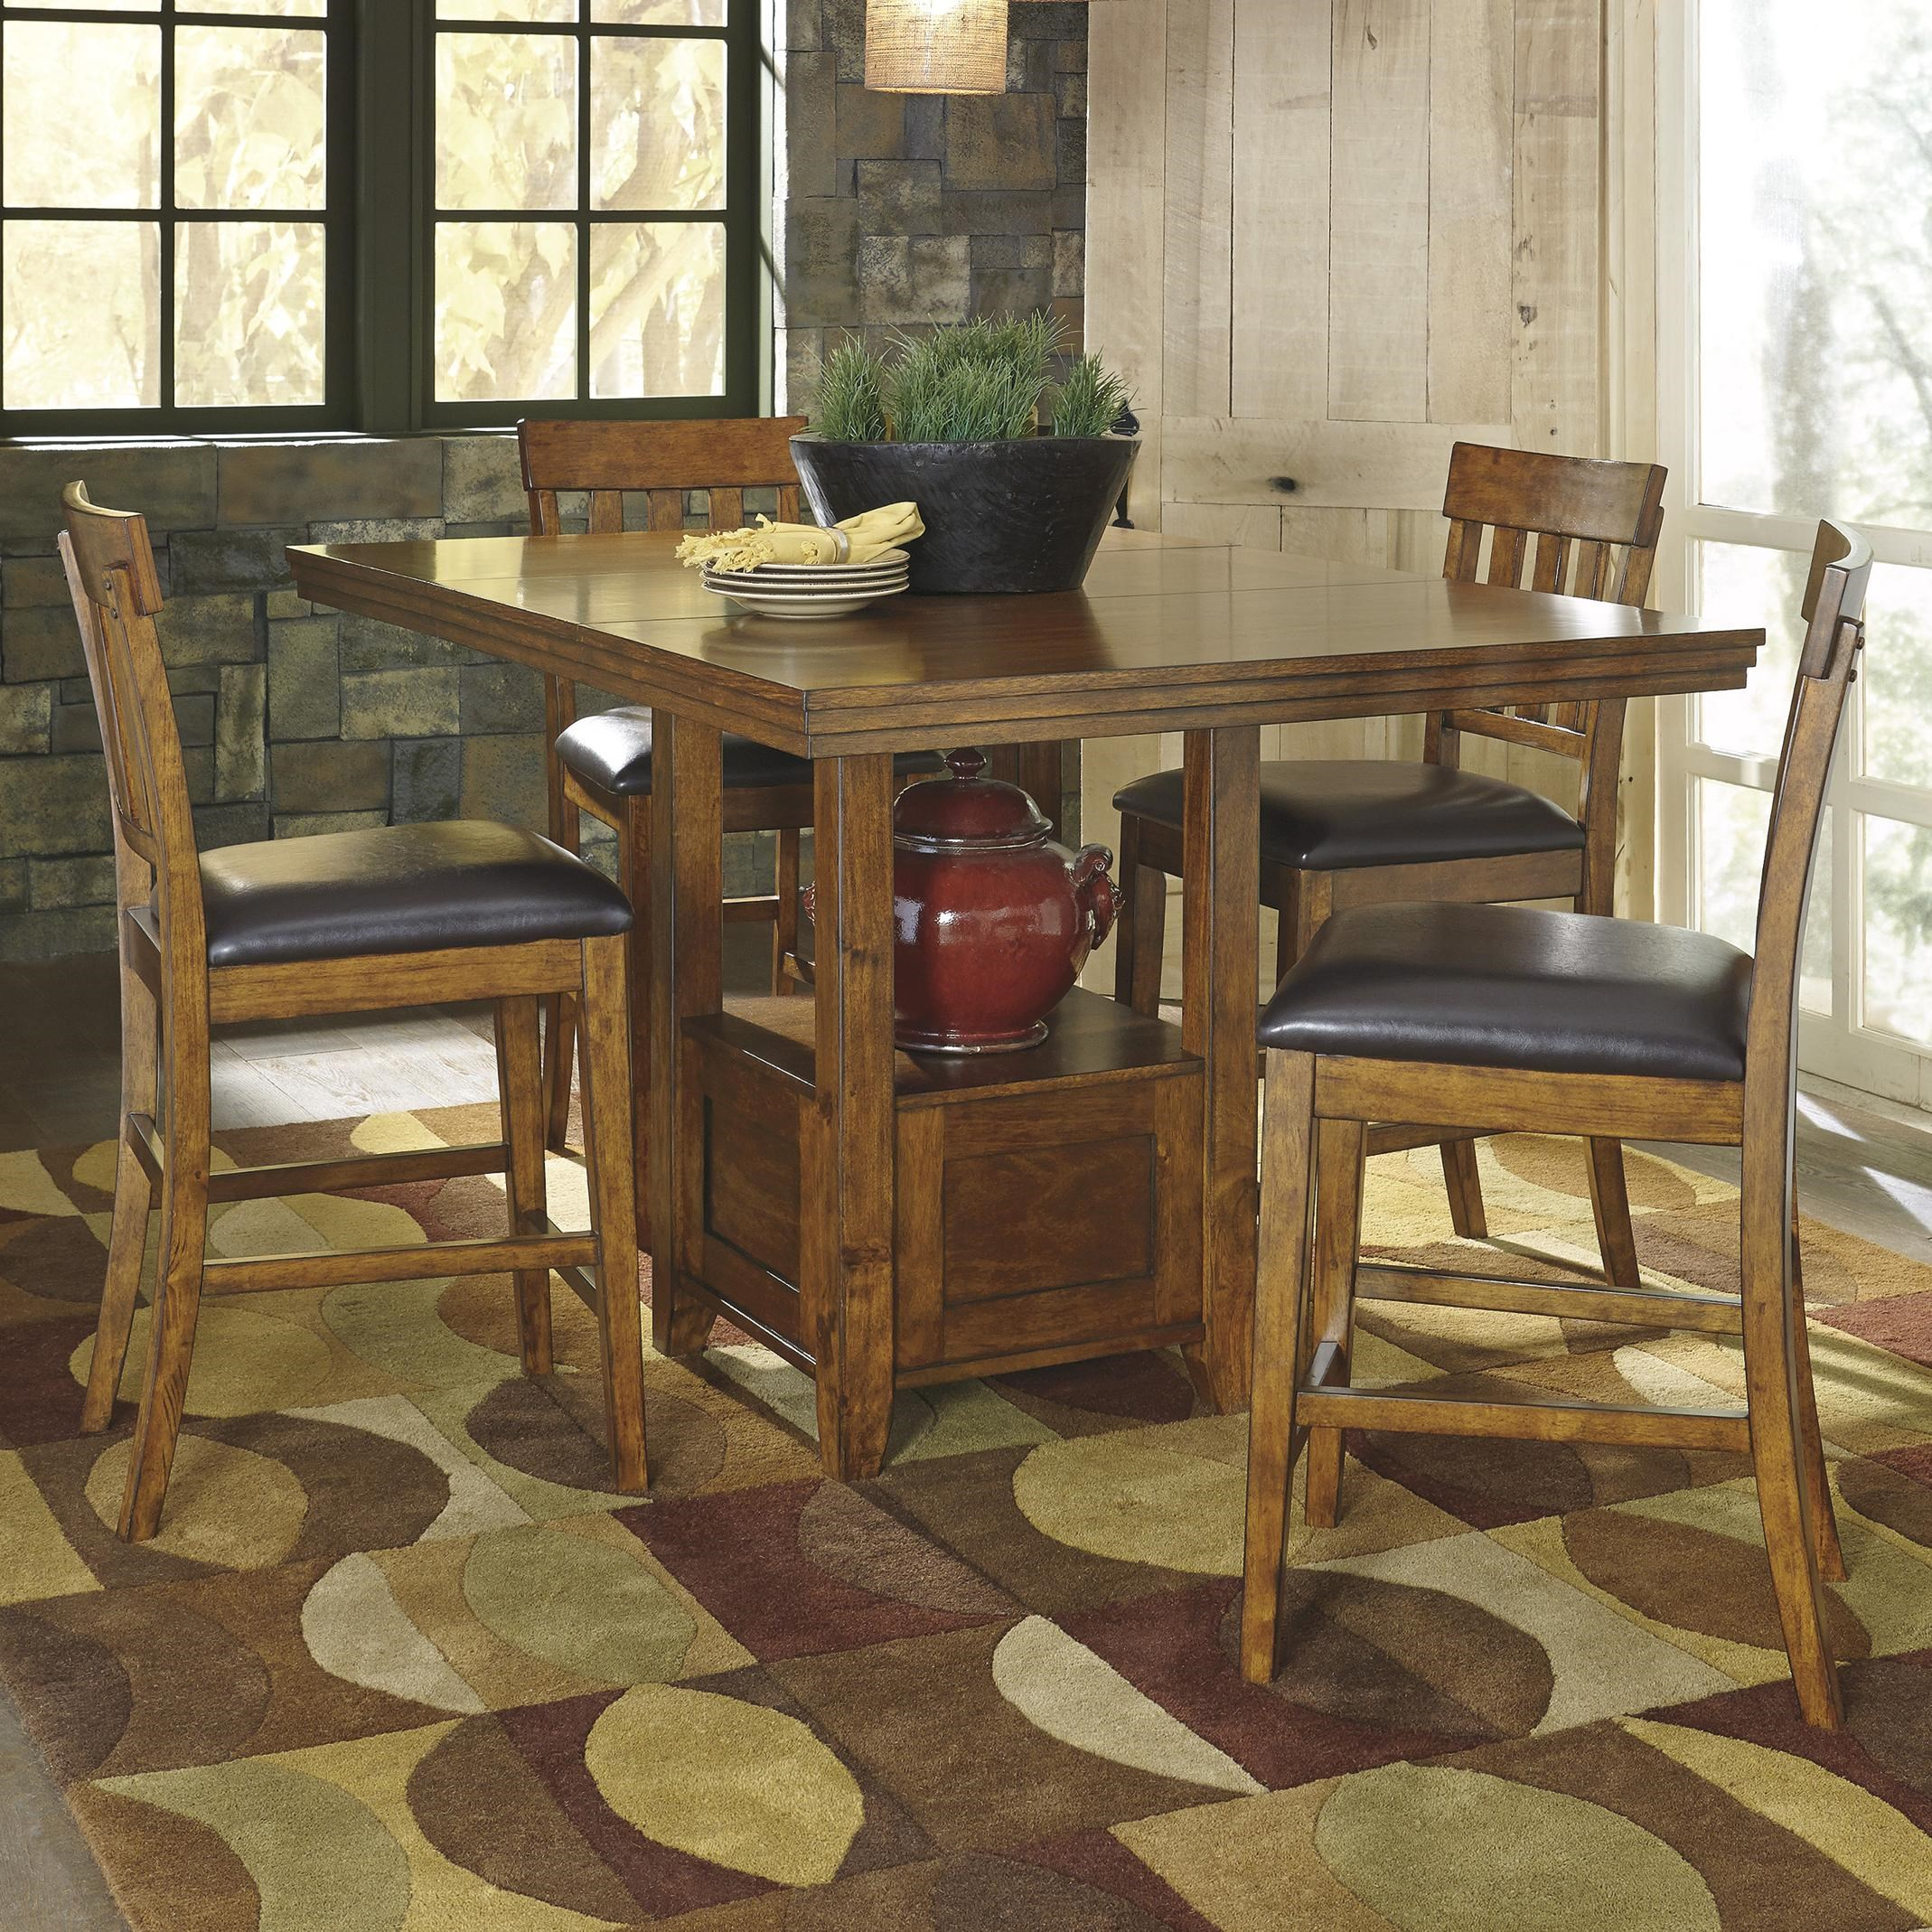 set of 4 bar stools. Signature Design By Ashley Ralene Casual Dining Table Set With 4 Bar Stools Of Y